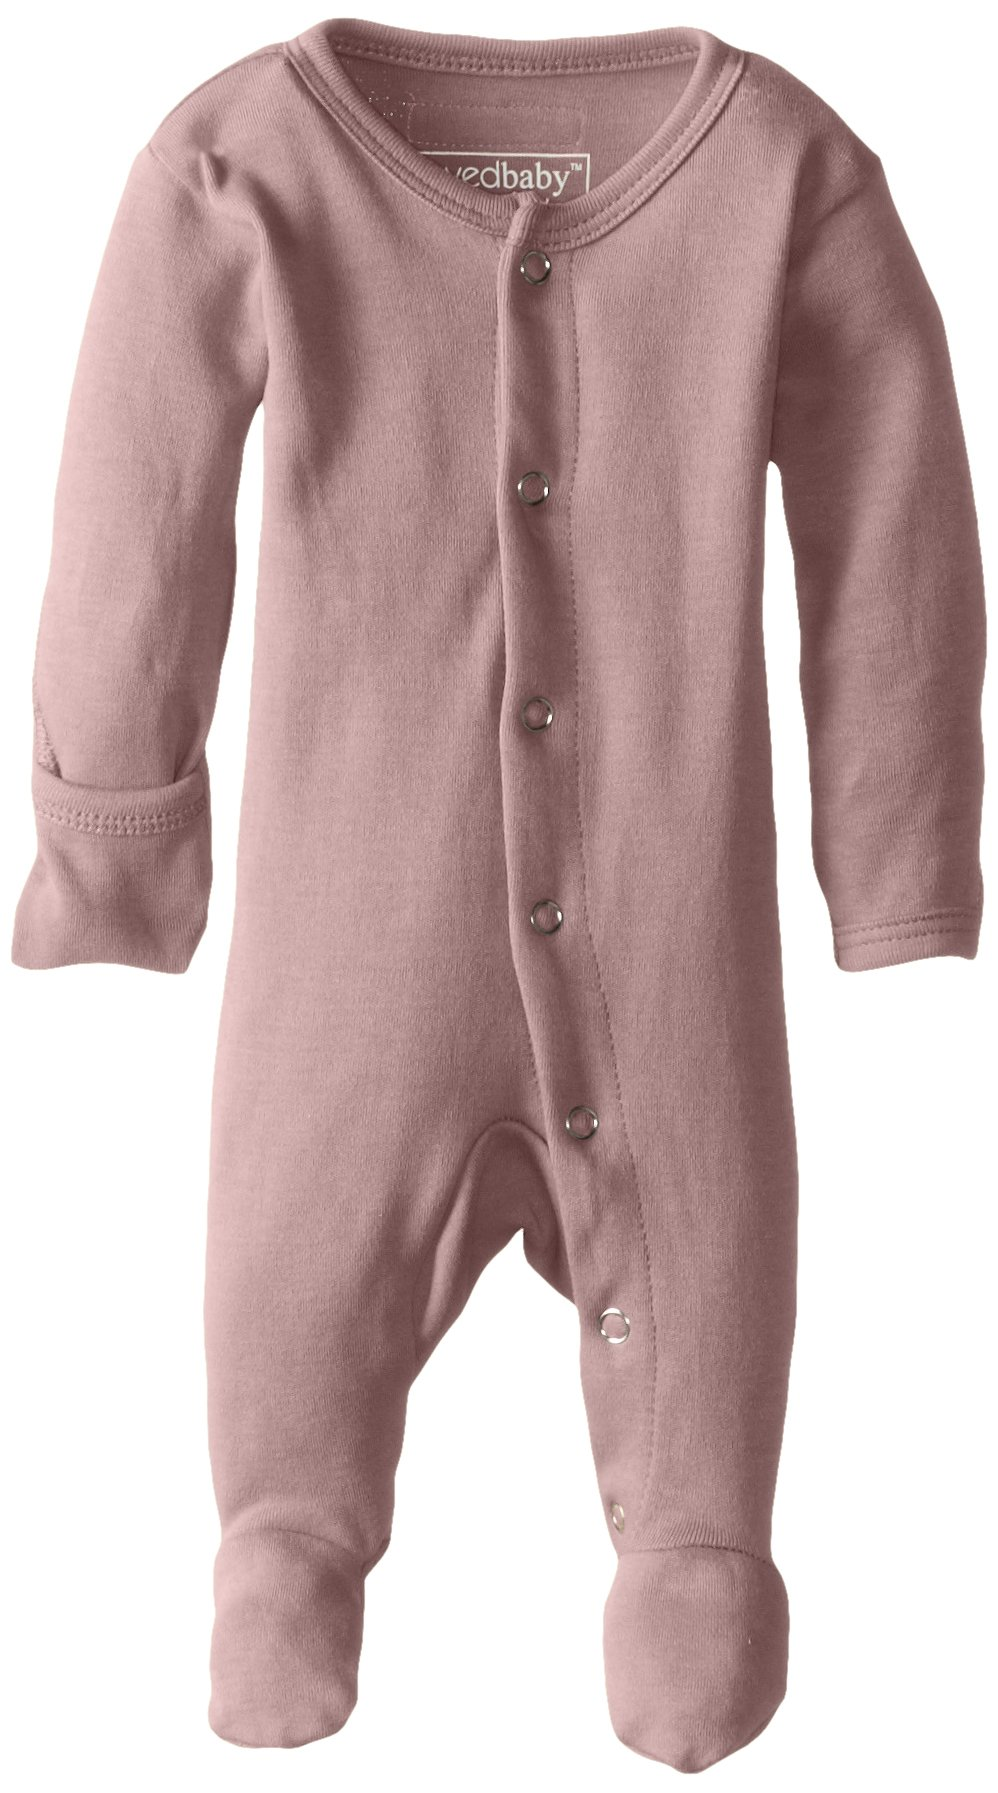 L'ovedbaby Unisex-Baby Organic Cotton Footed Overall, Mauve, 0/3 Months by L'ovedbaby